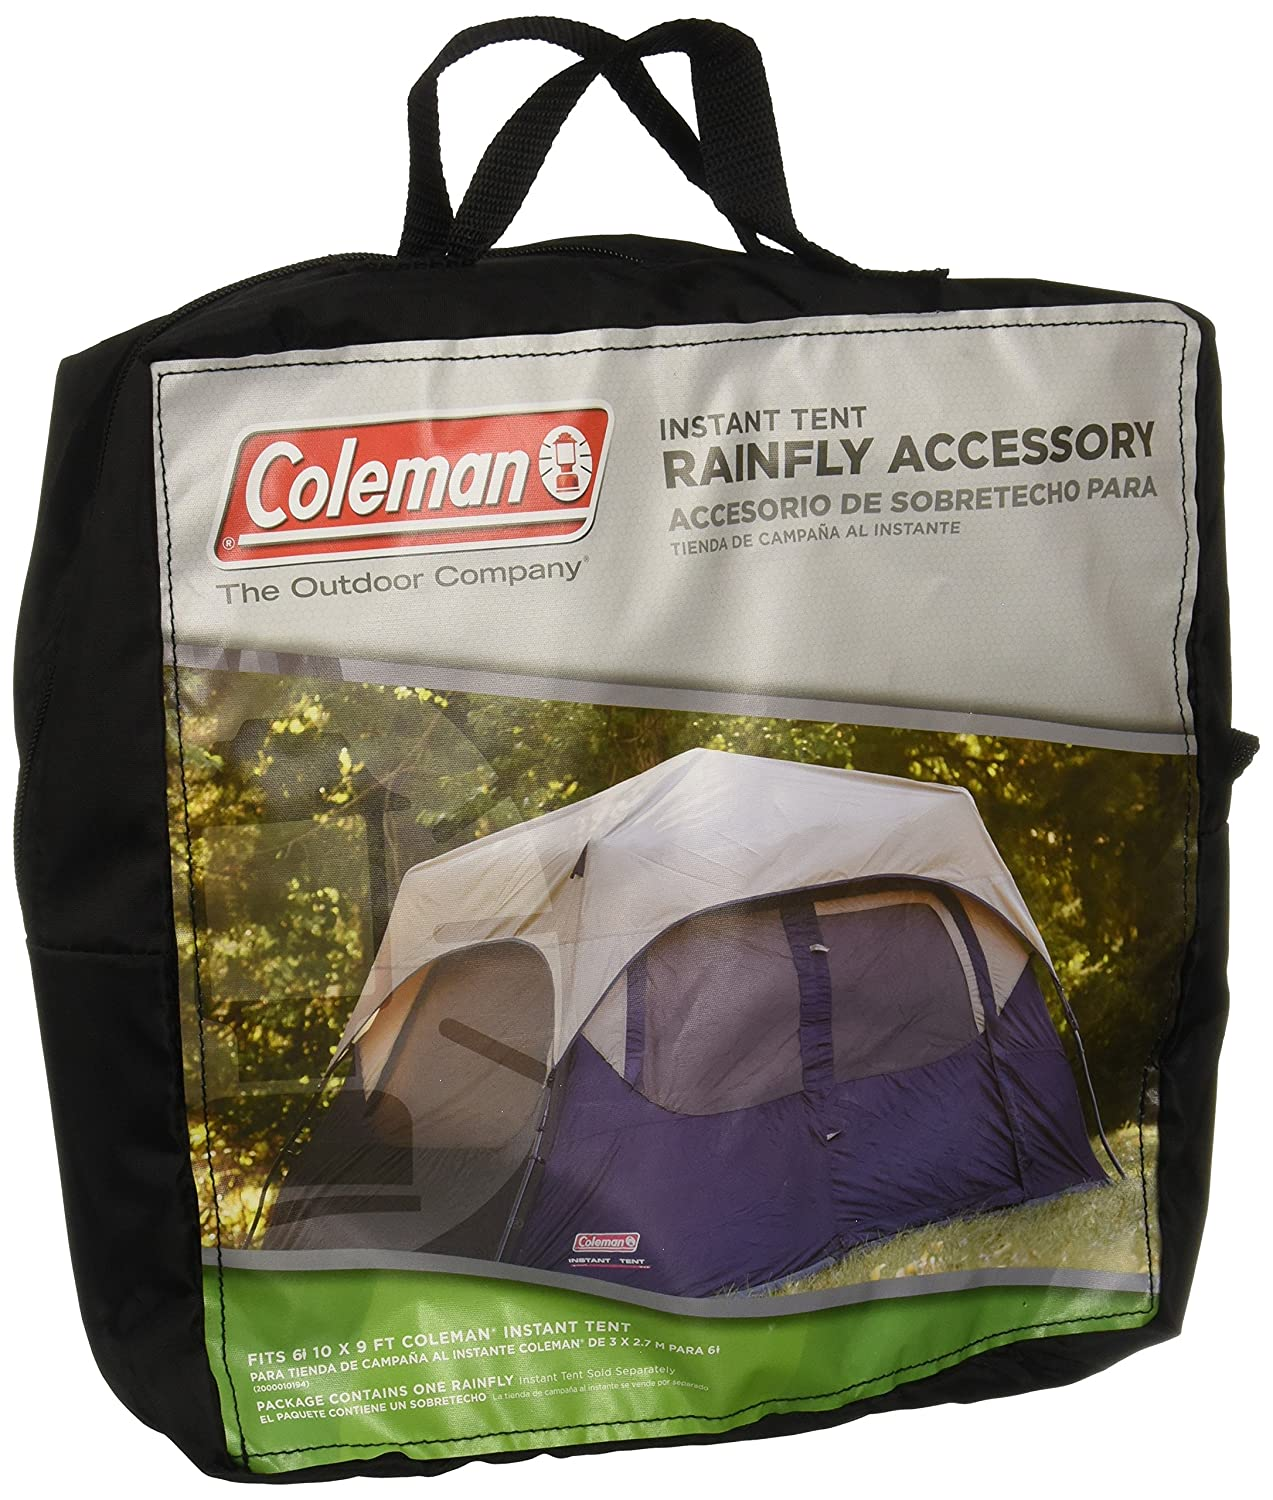 Coleman 6-Person Instant Tent Rainfly Accessory Amazon.in Sports Fitness u0026 Outdoors  sc 1 st  Amazon.in & Coleman 6-Person Instant Tent Rainfly Accessory: Amazon.in: Sports ...